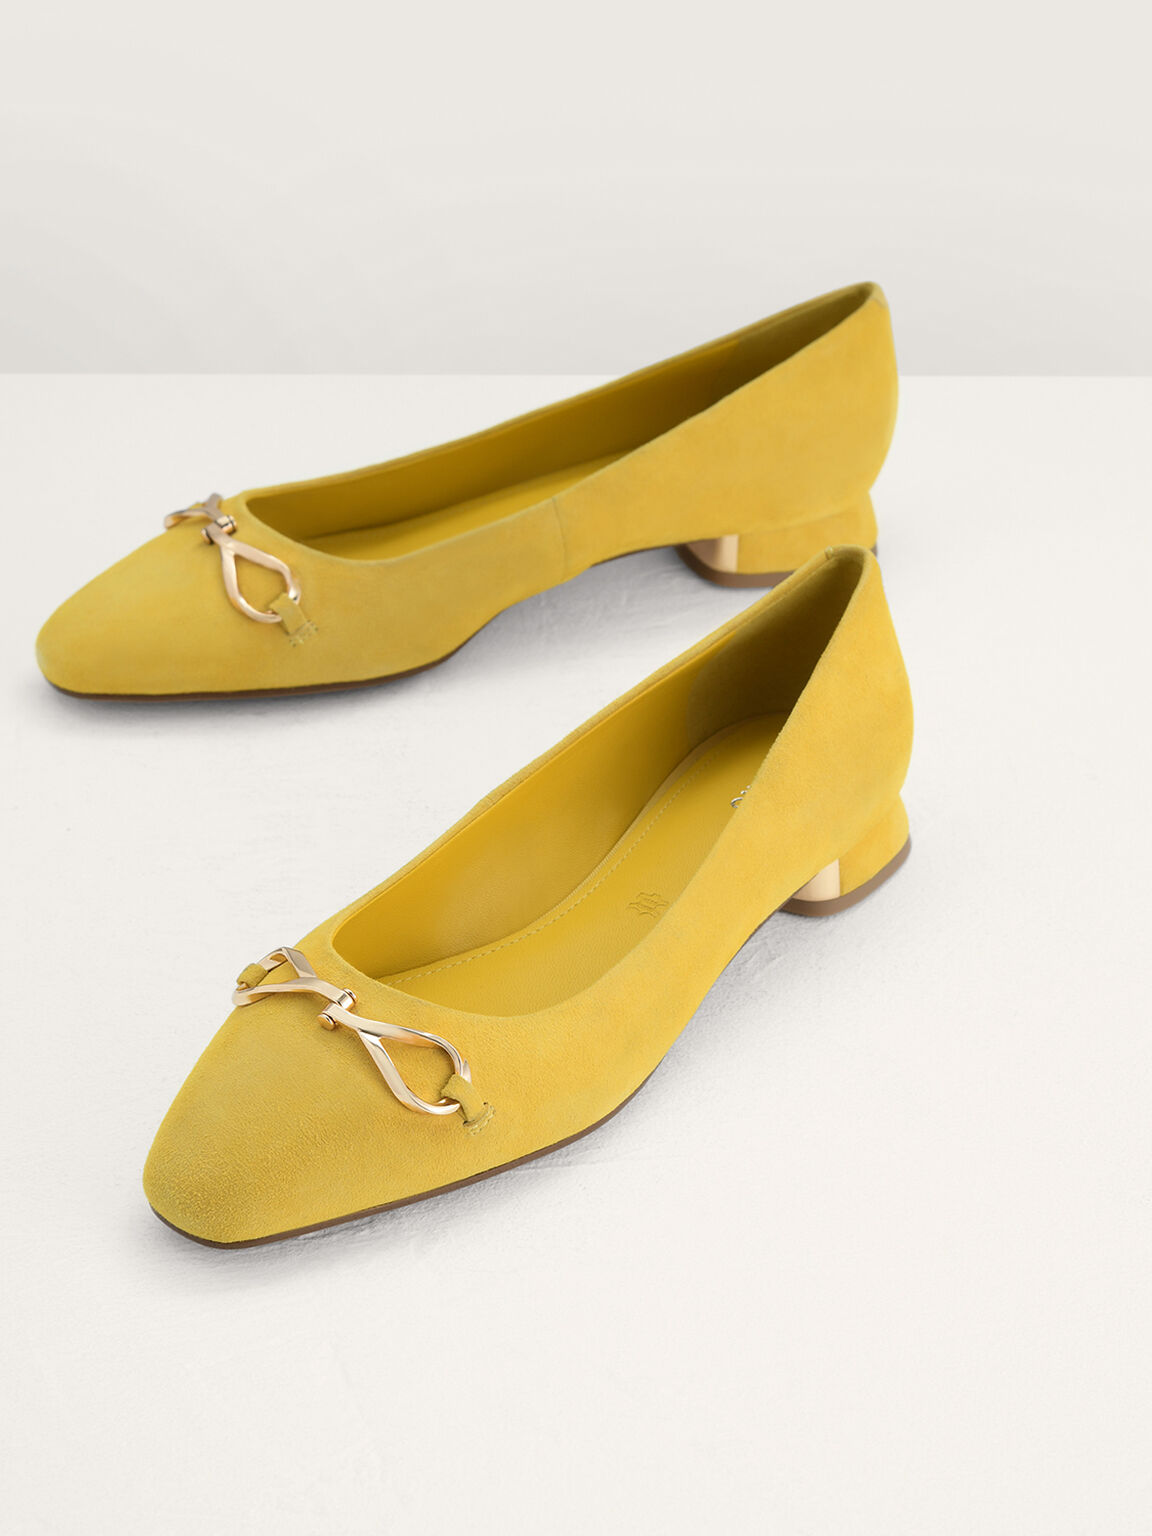 Suede Leather Ballerina Flats, Yellow, hi-res